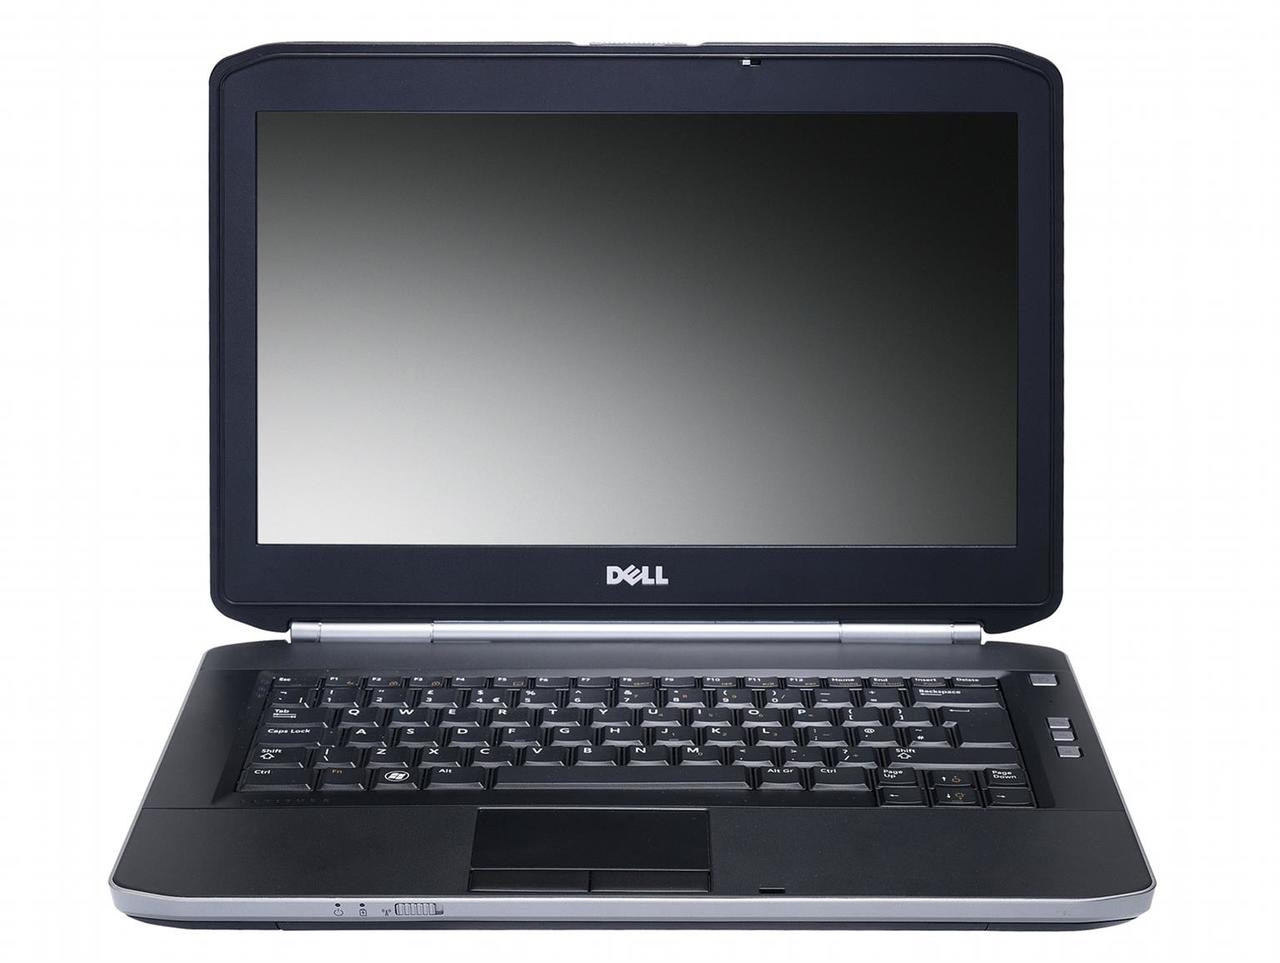 DELL E5420 - Fast Core i3 - 2330M - Laptop ( Display - Keyboard )